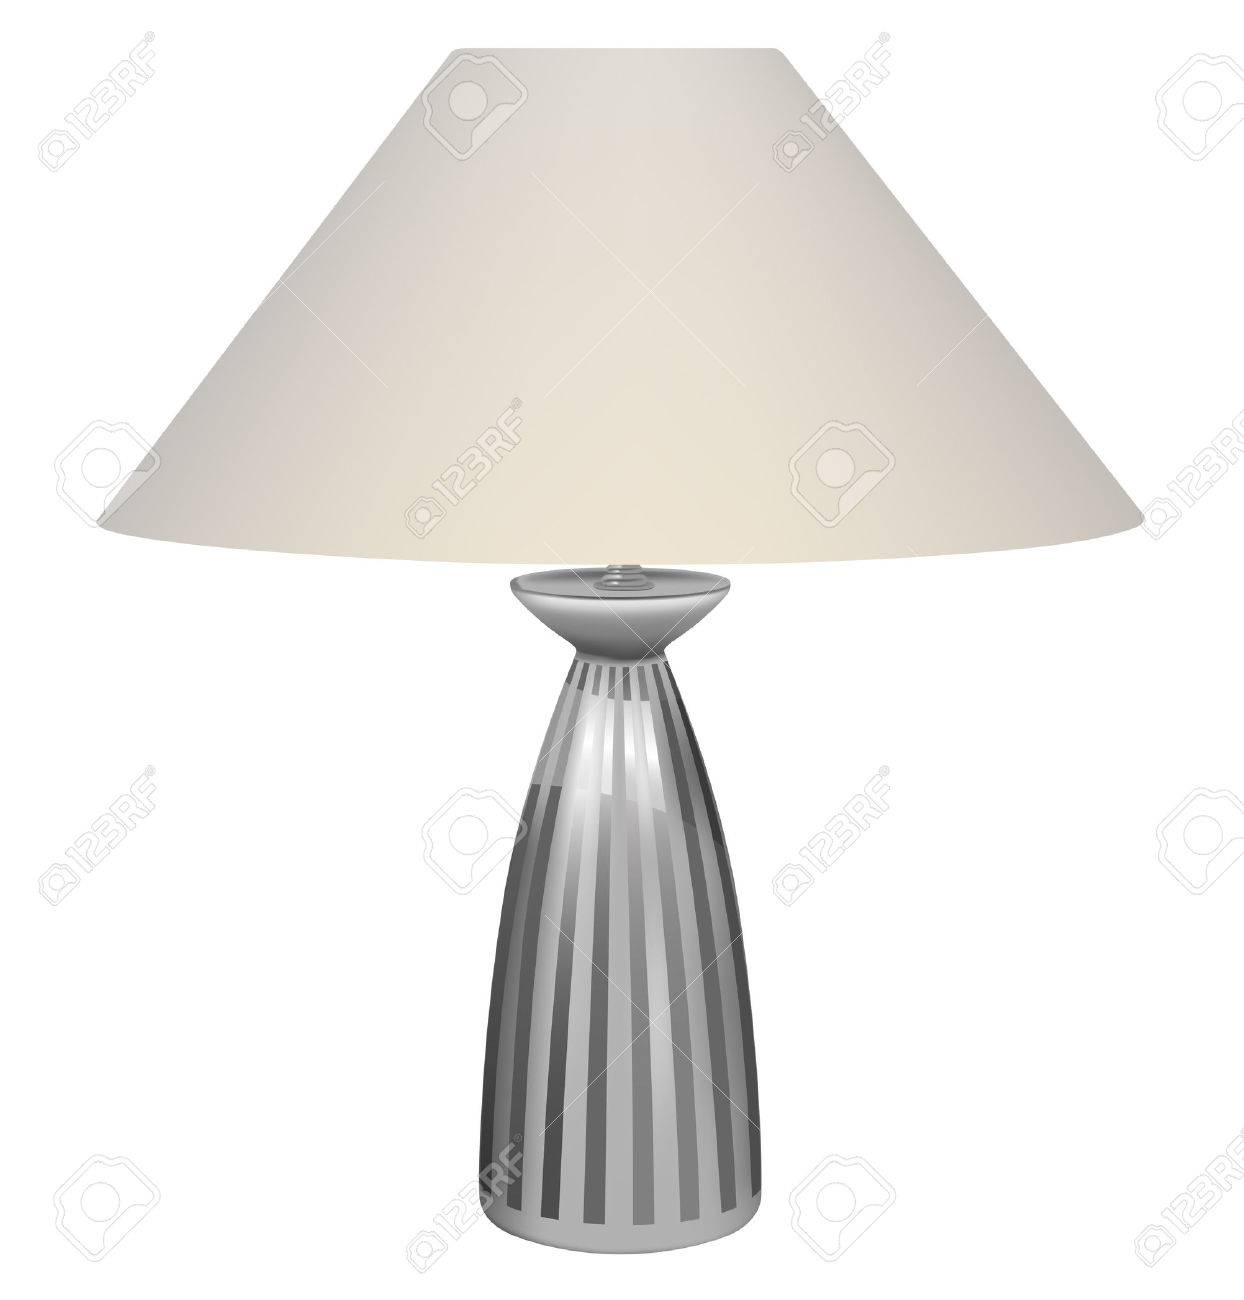 vector table lamp on white background - 7849181